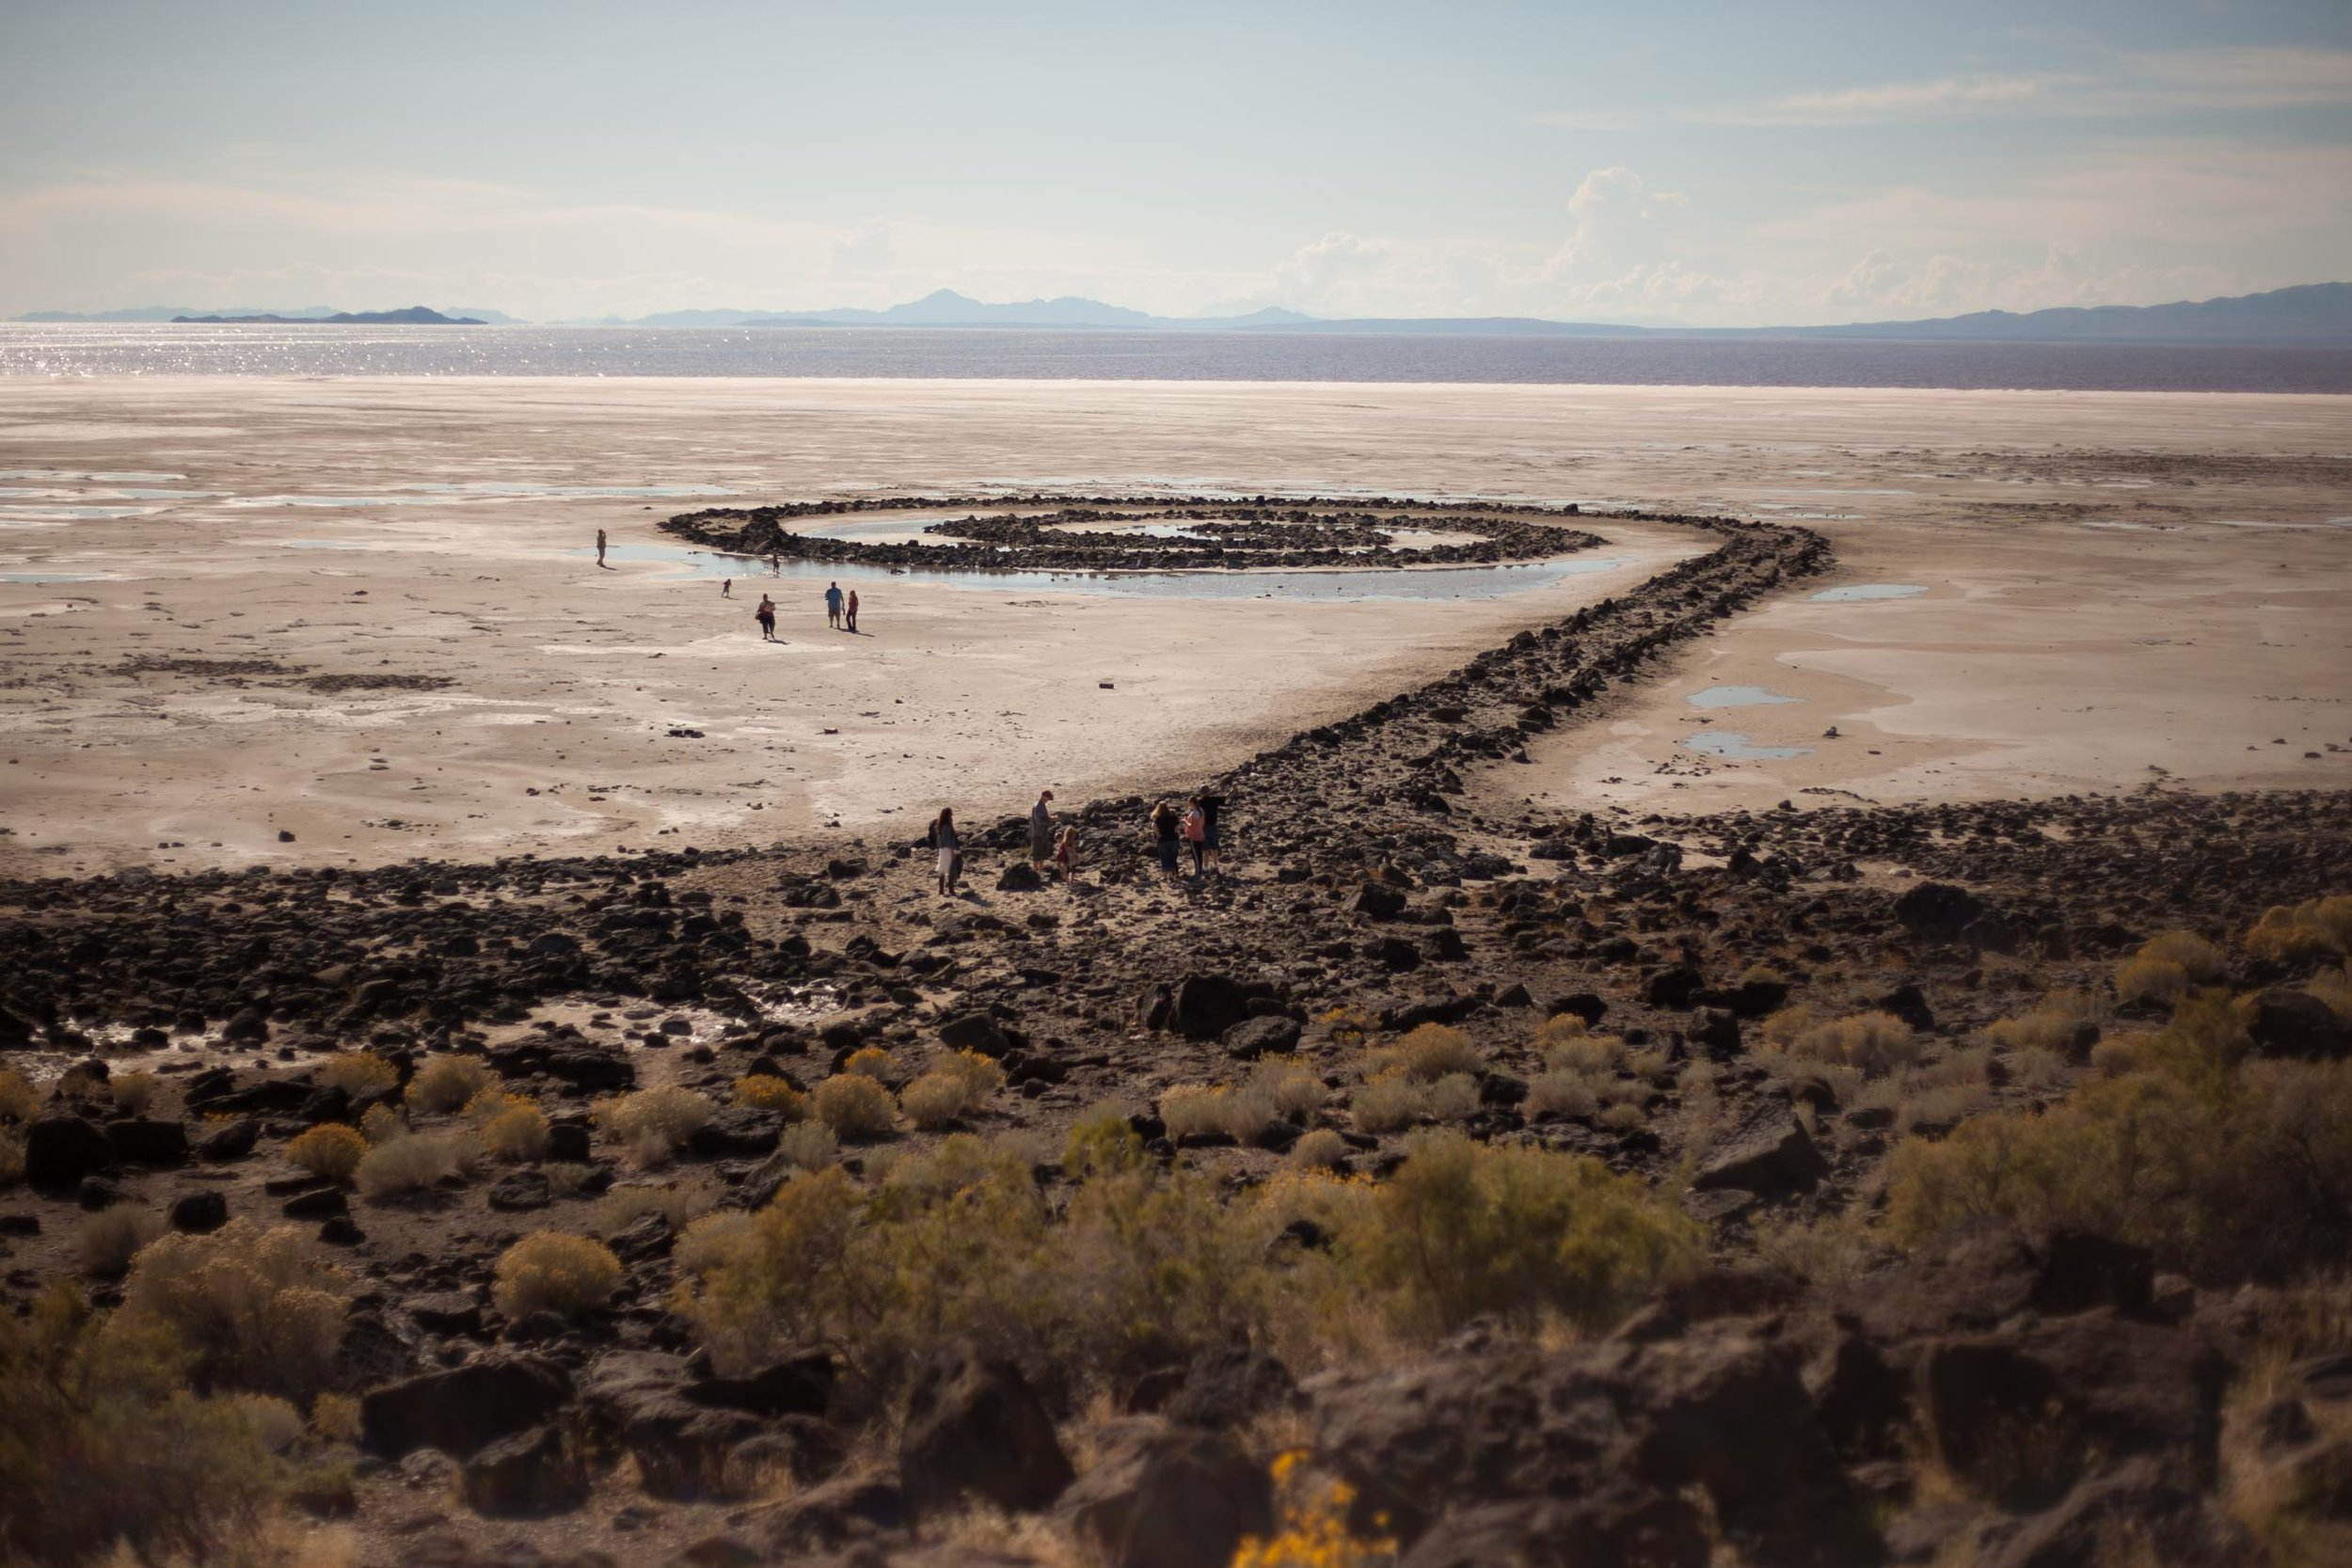 The Spiral Jetty, the central work of American sculptor  Robert Smithson  constructed in 1970 of the mud, salt crystals, and basalt rocks found in the area.